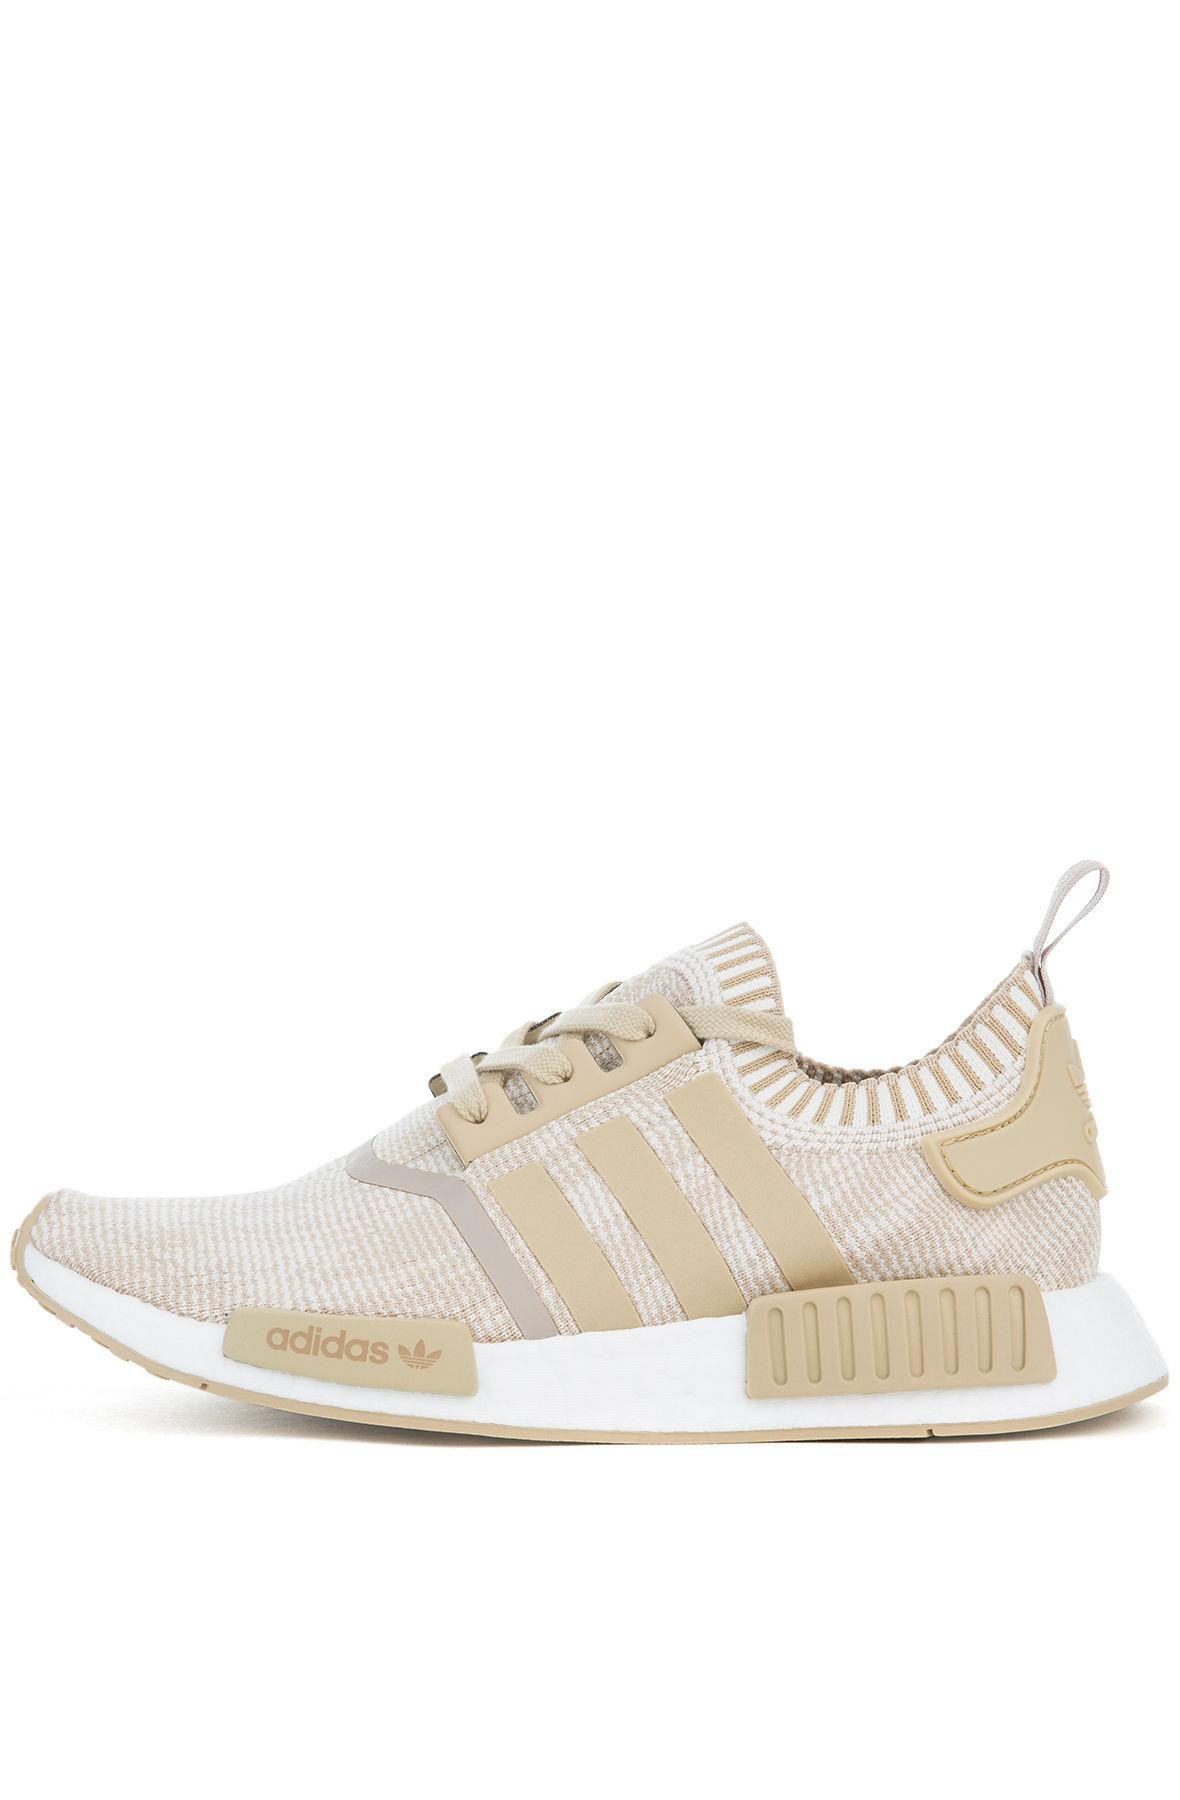 29728a764 Lyst - adidas The Nmd R1 Primeknit Sneaker In Linen Khaki in Natural